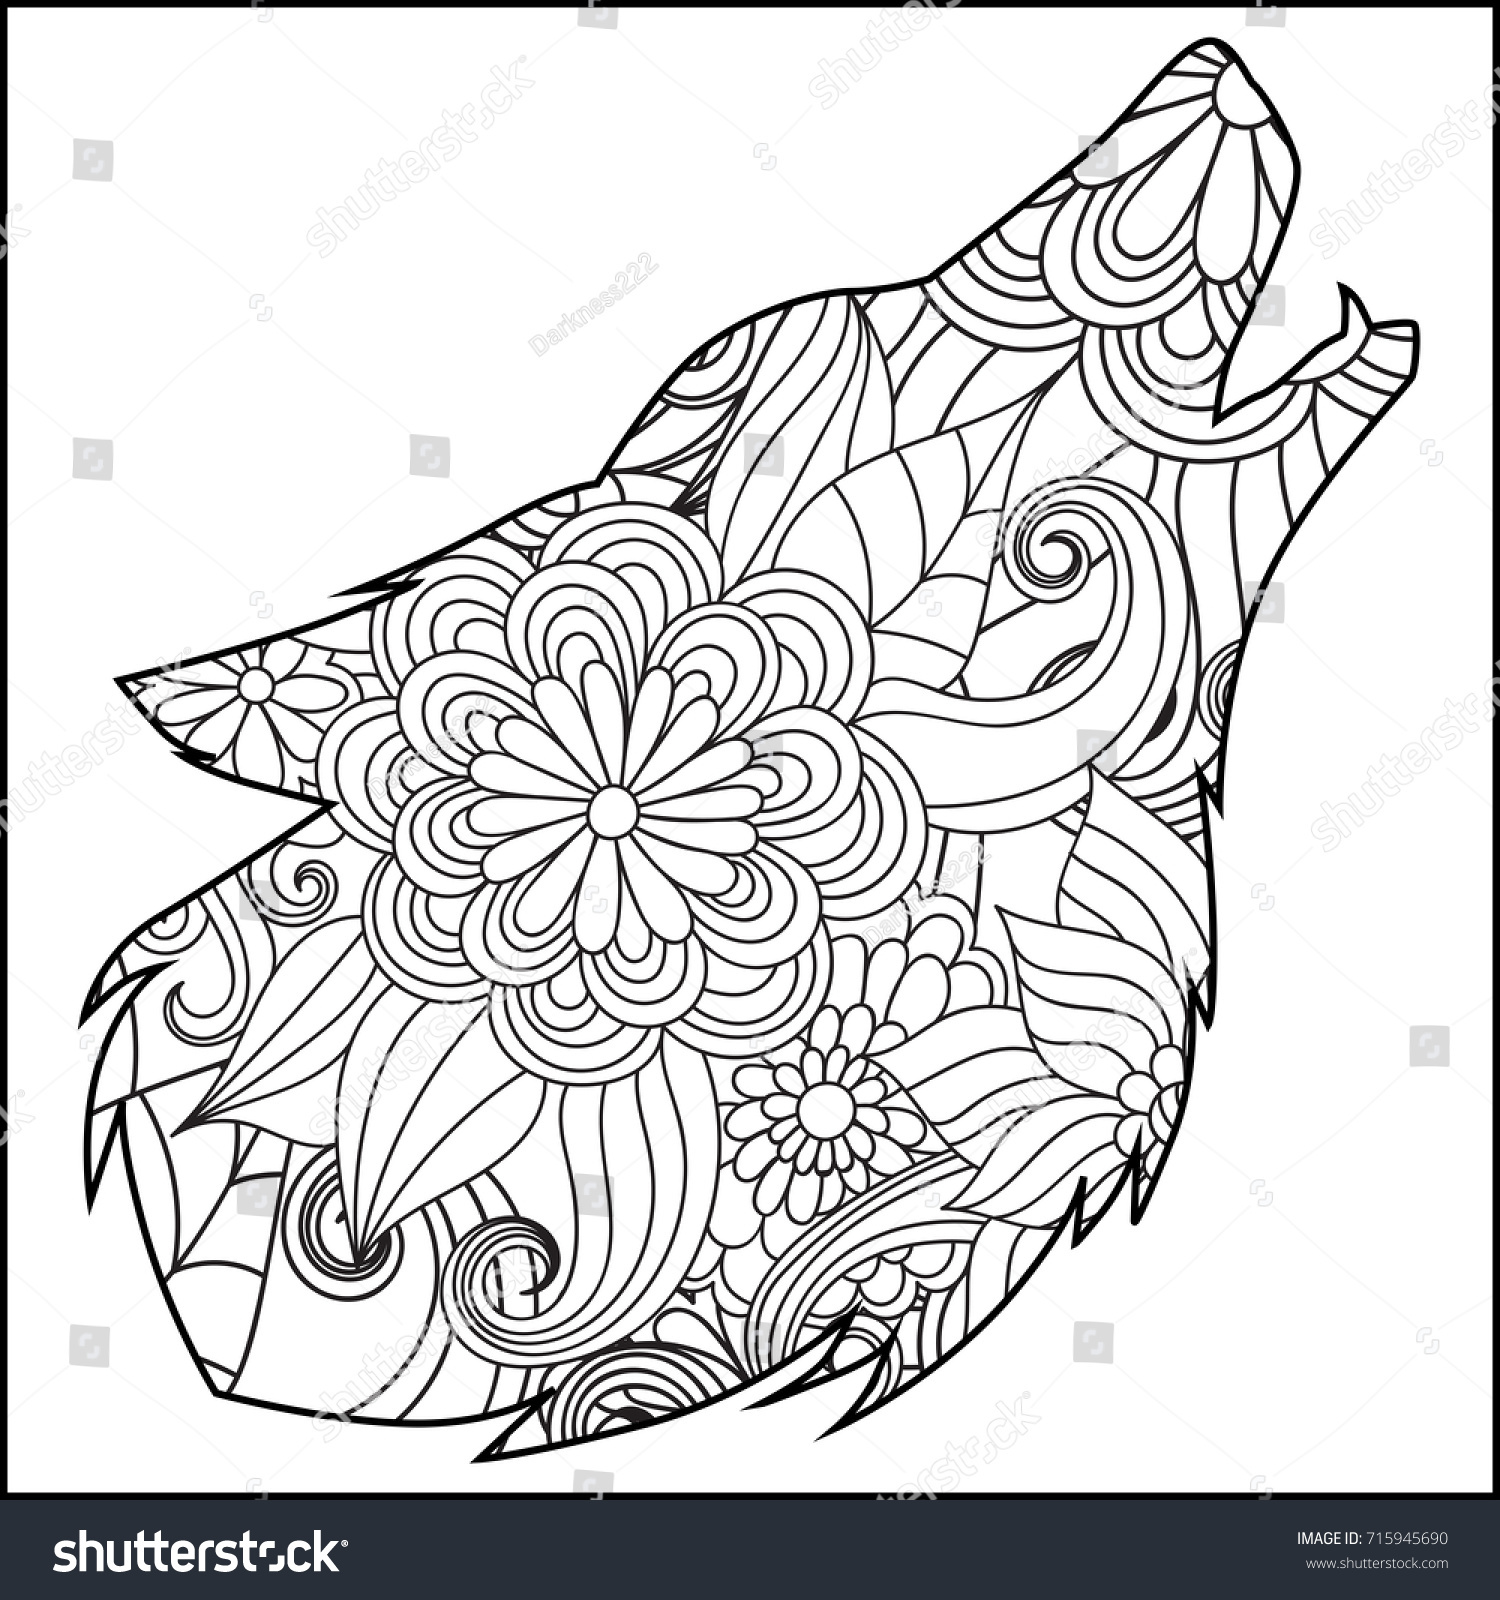 Coloring Page Flower Wolf Head Stock Vector (Royalty Free) 715945690 ...